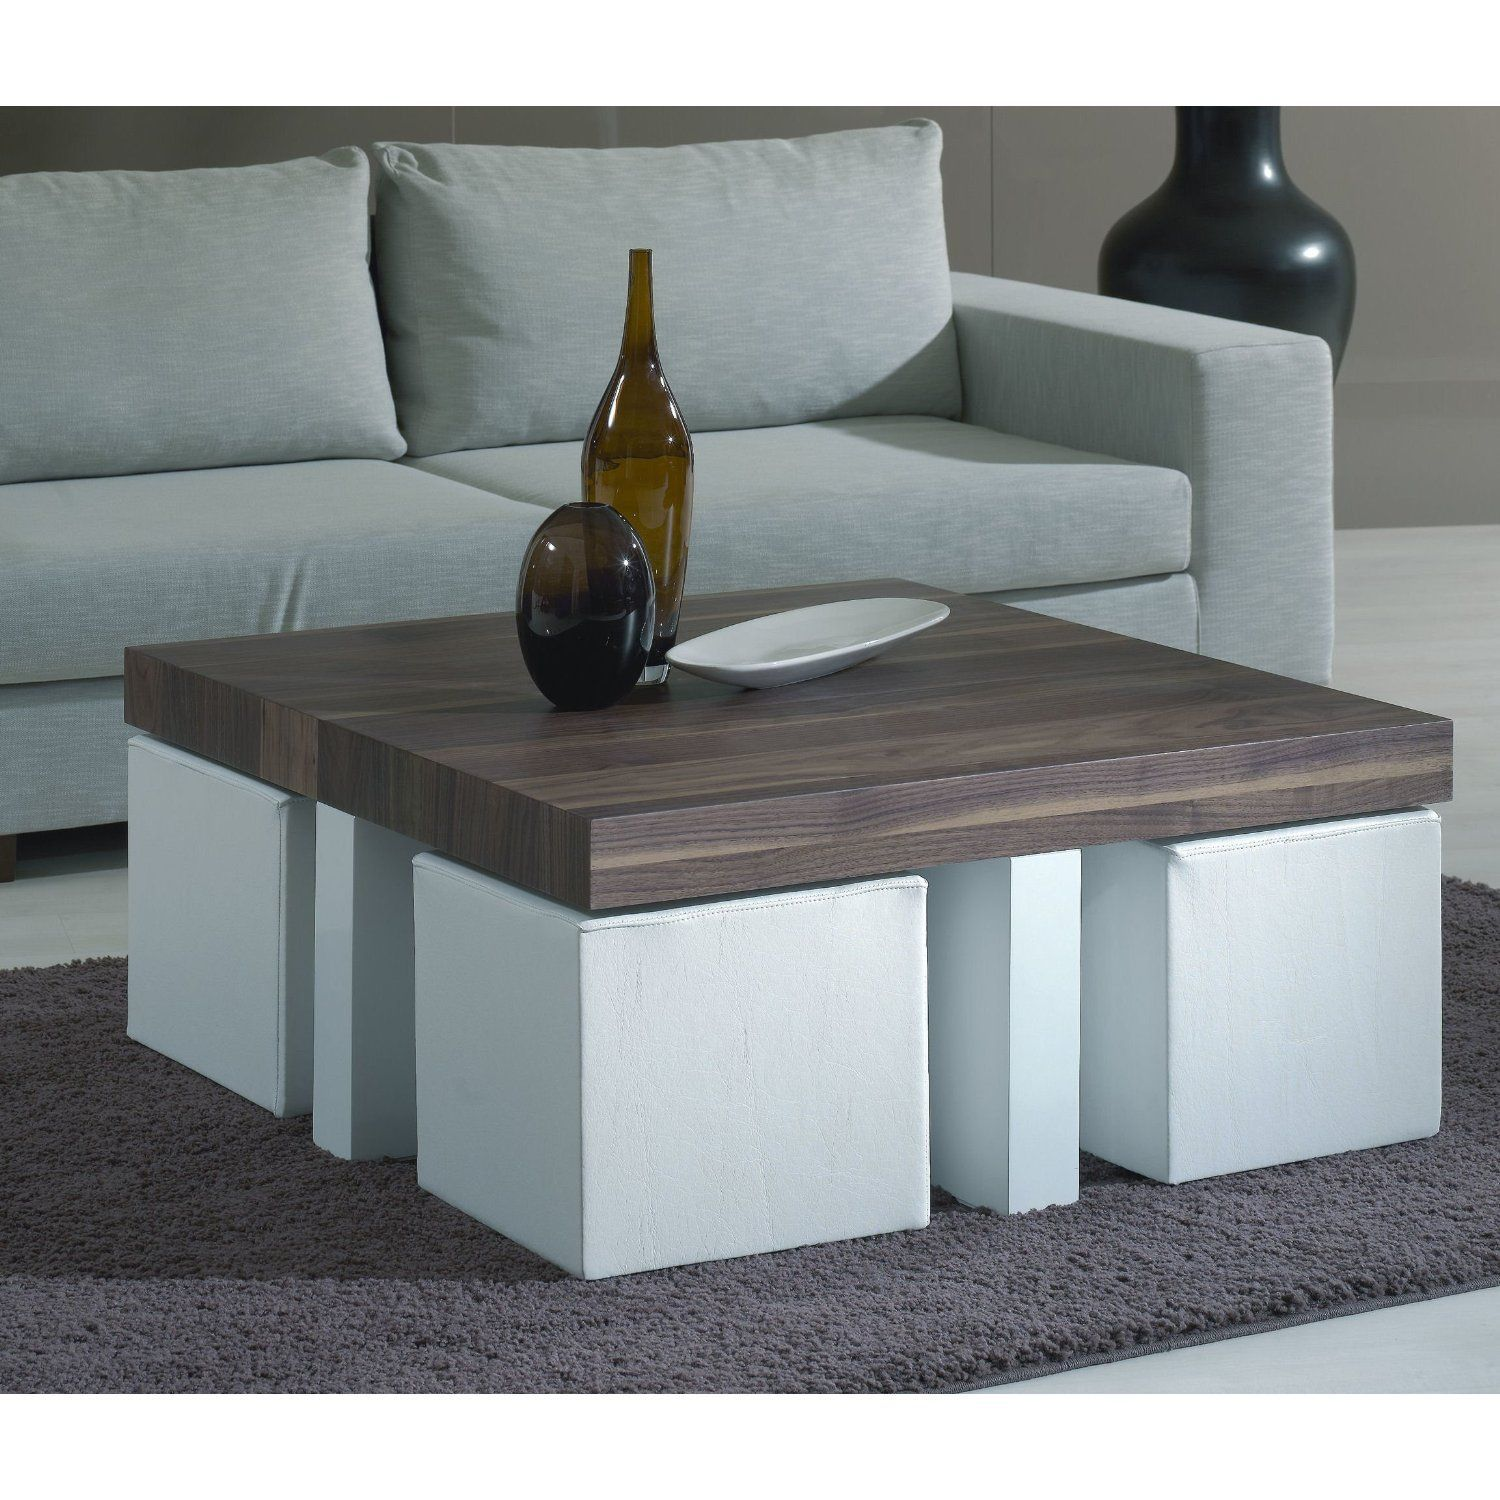 New Coffee Tables With Stools Outstanding Coffee Tables With Stools 39 Inspirational Bat Coffee Table With Seating Coffee Table With Stools Coffee Table Wood [ jpg ]